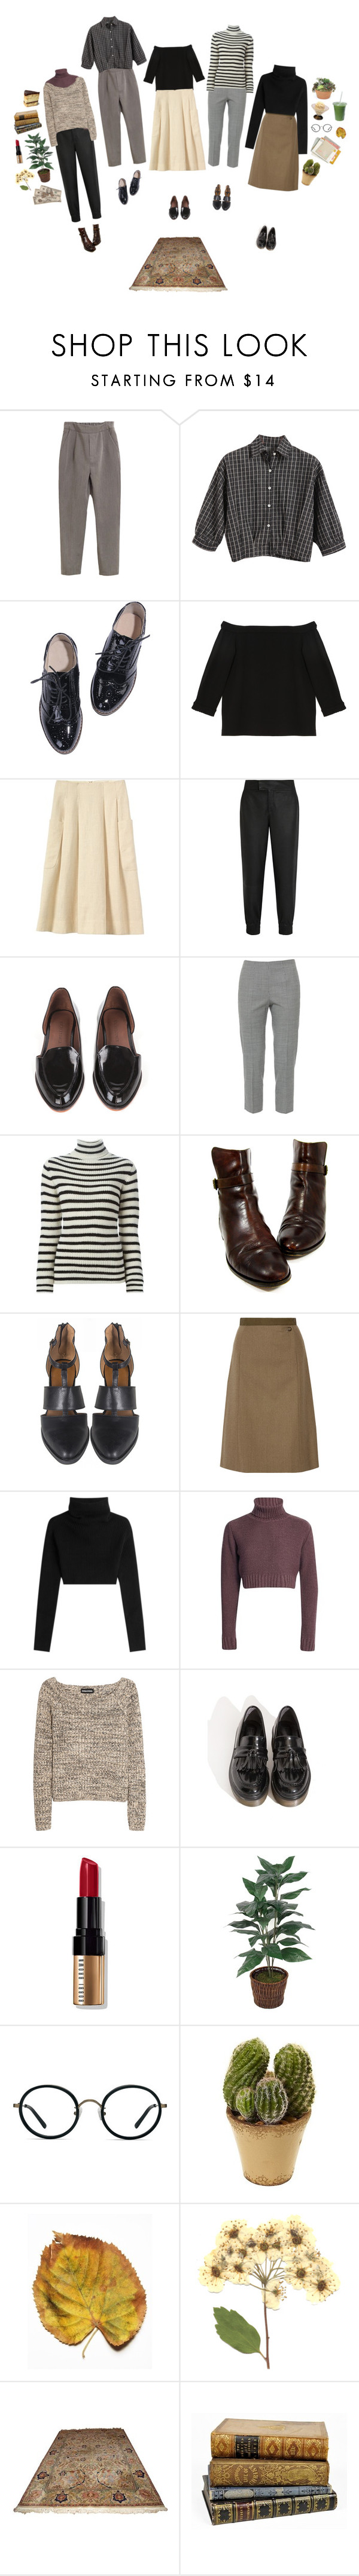 """Keepin' It Neutral"" by silentmoonchild ❤ liked on Polyvore featuring Chicnova Fashion, TIBI, Helmut Lang, Rachel Comey, Piazza Sempione, IRO, Ralph Lauren, Maison Margiela, Valentino and Sonia Rykiel"